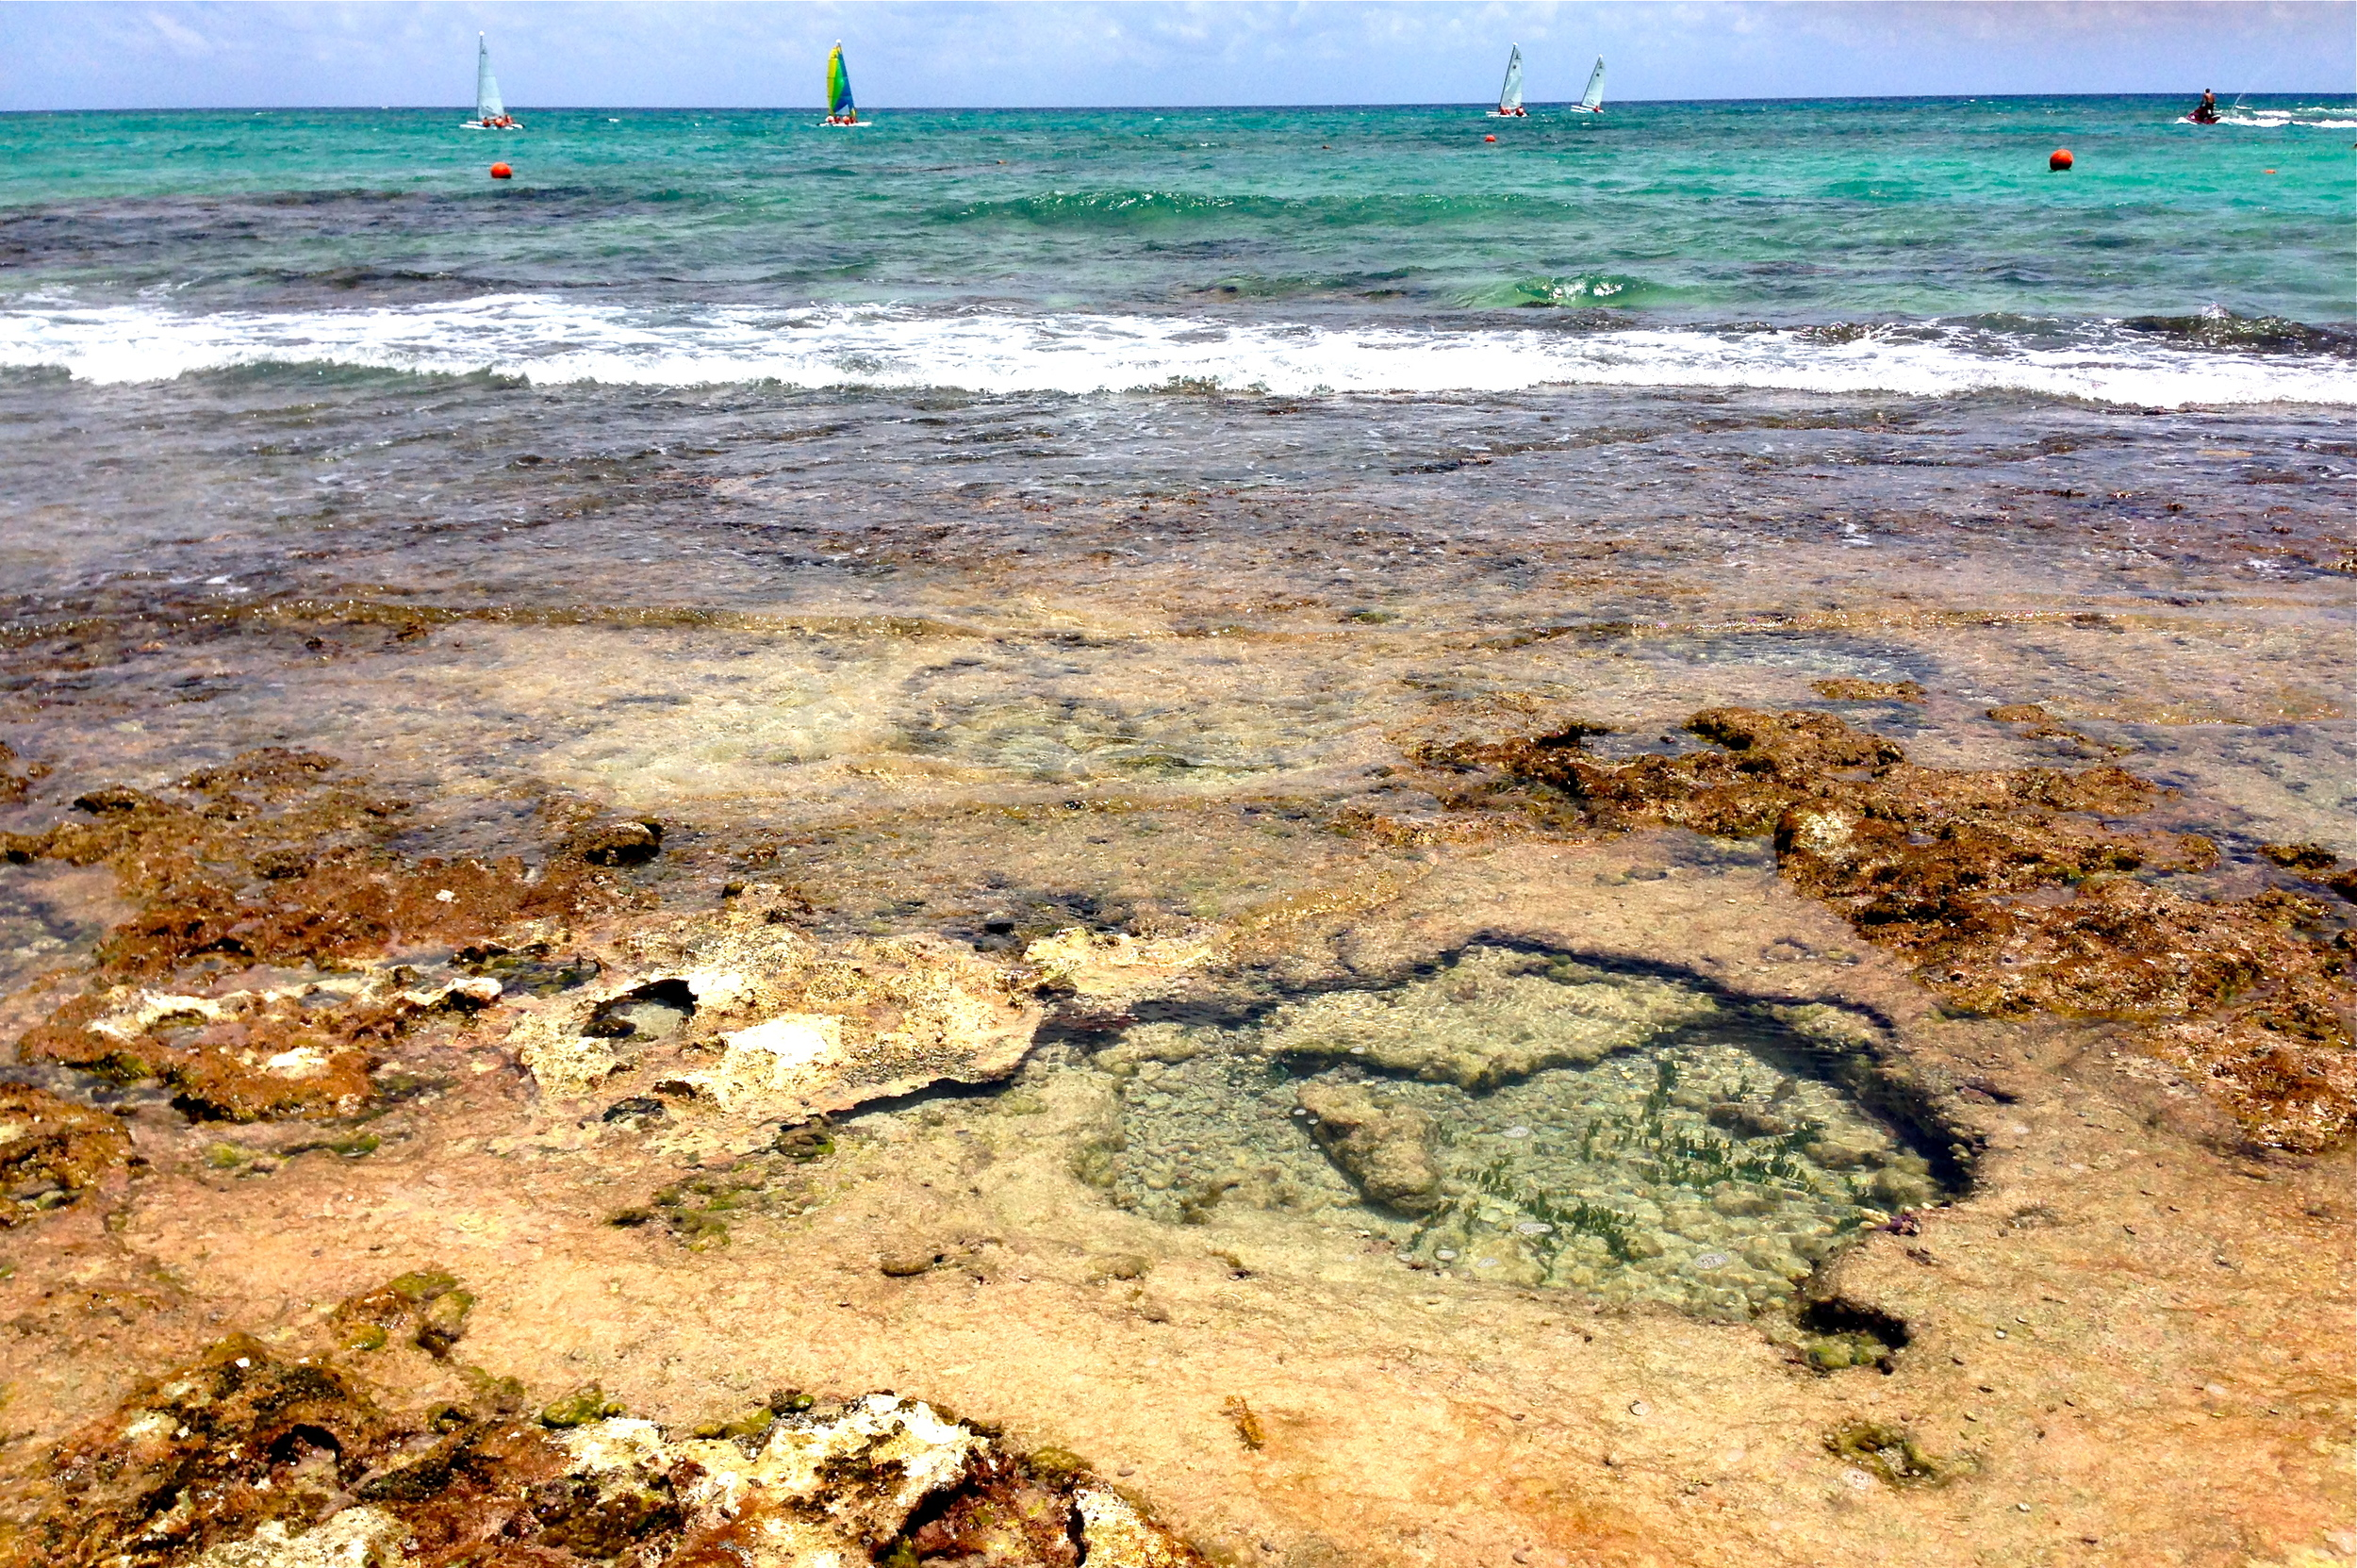 Turquoise waters and tide pools